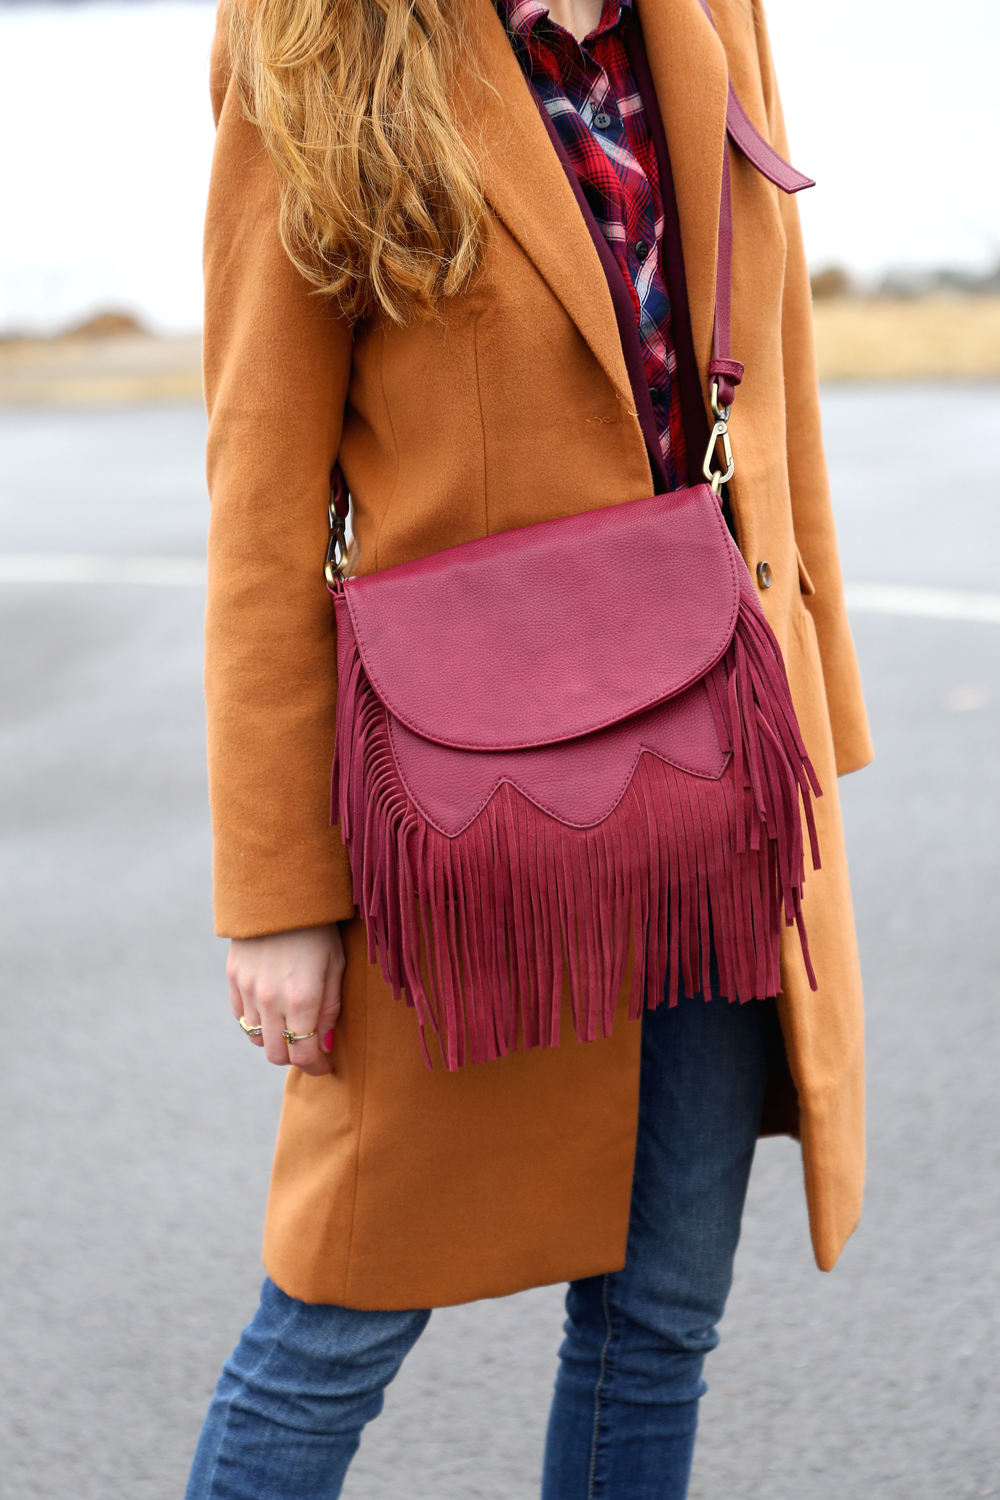 Bundled In Burgundy- Enchanting Elegance